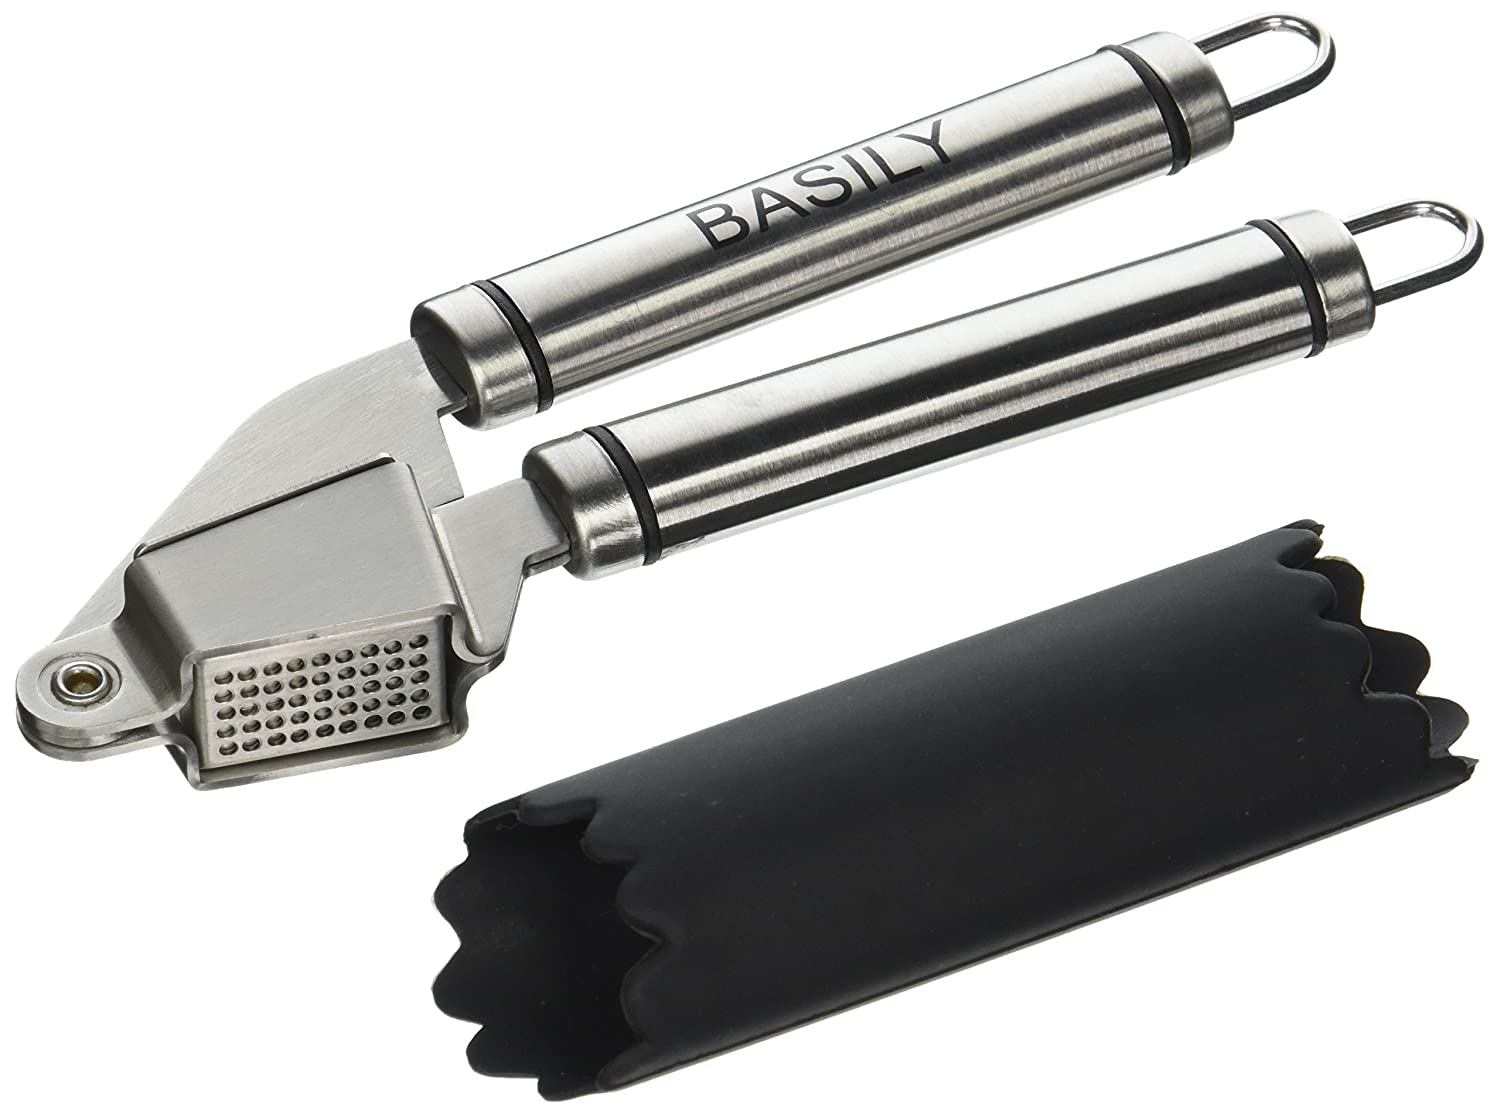 Basily Garlic Press - Garlic Peeler Premium Stainless Steel Grade - Silicon Rolling Tube Peeler Included, Stainless Steel ynf7466